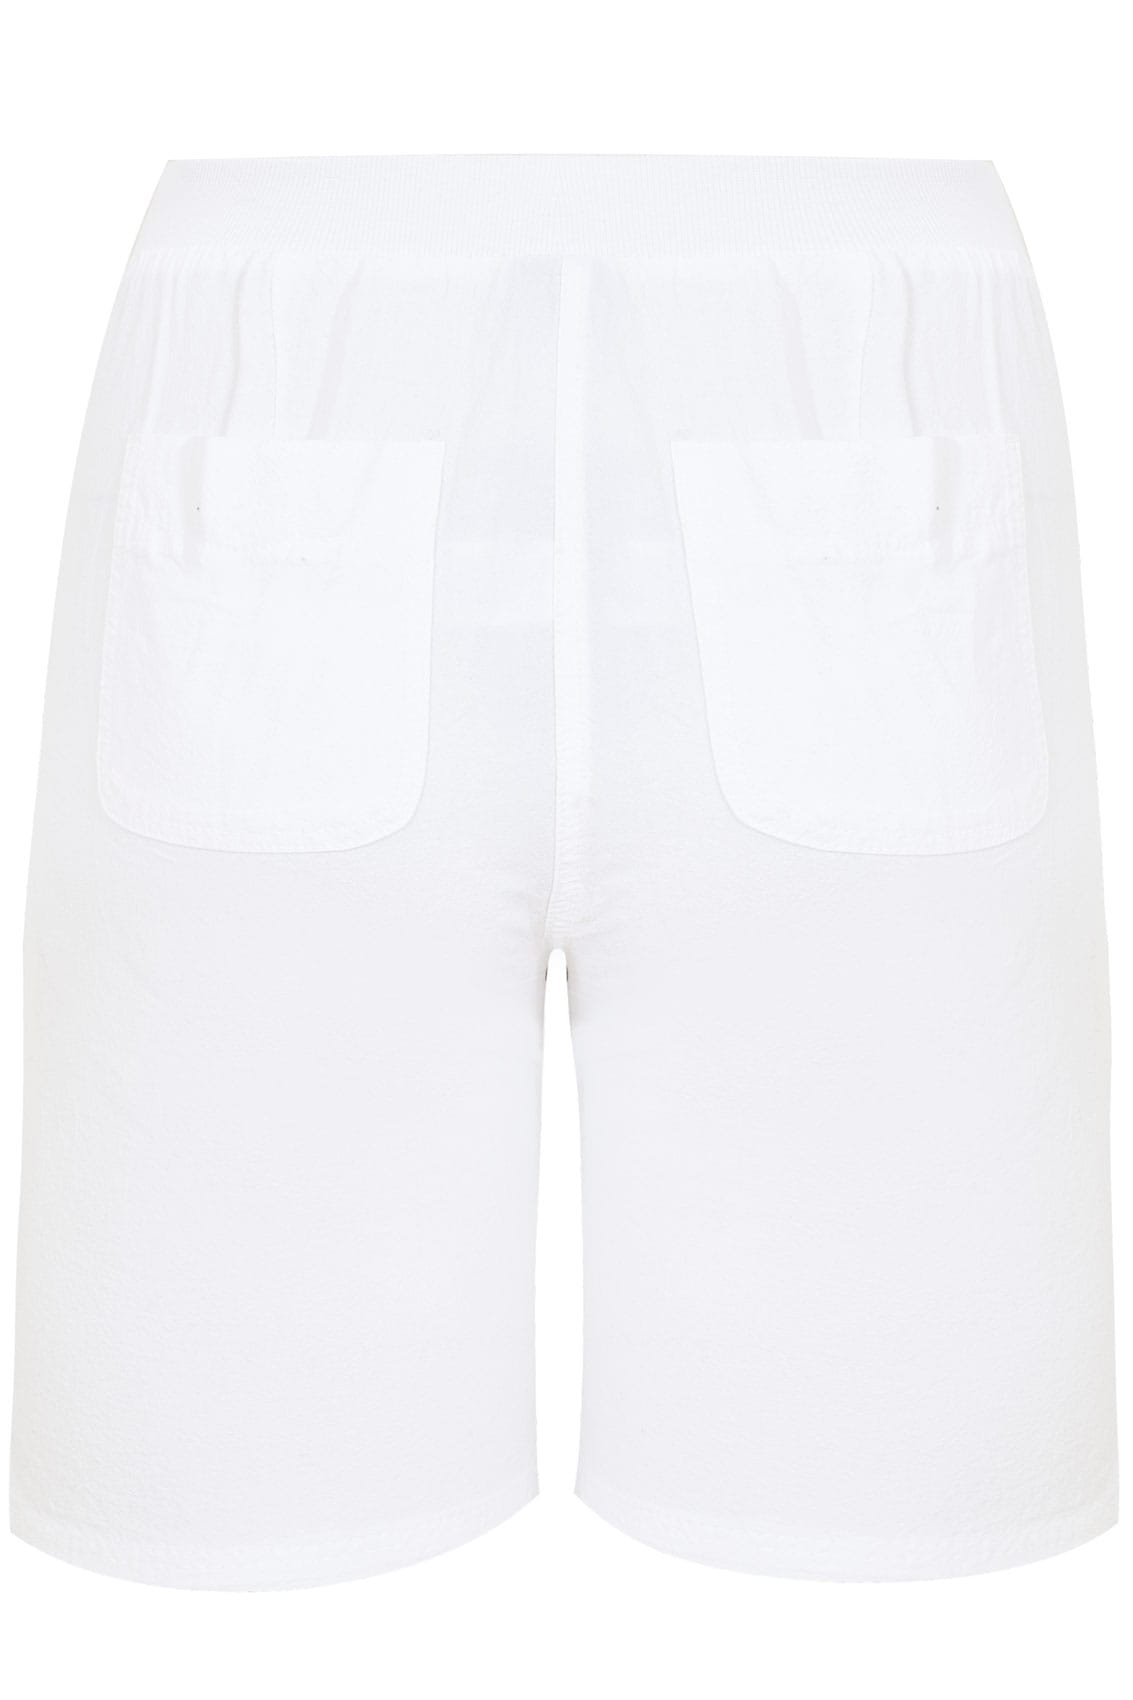 White Cool Cotton Pull On Shorts With Pockets, Plus size ...